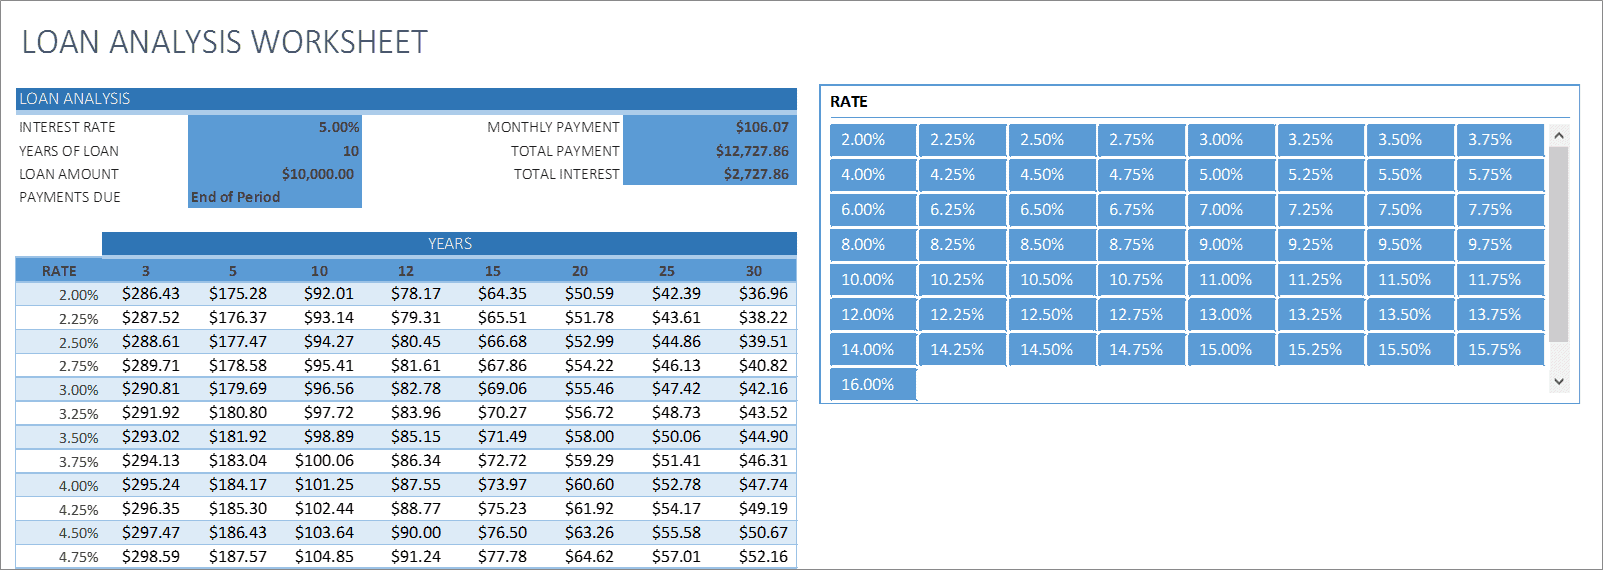 Loan Analysis Excel Worksheet - Business Insights Group AG